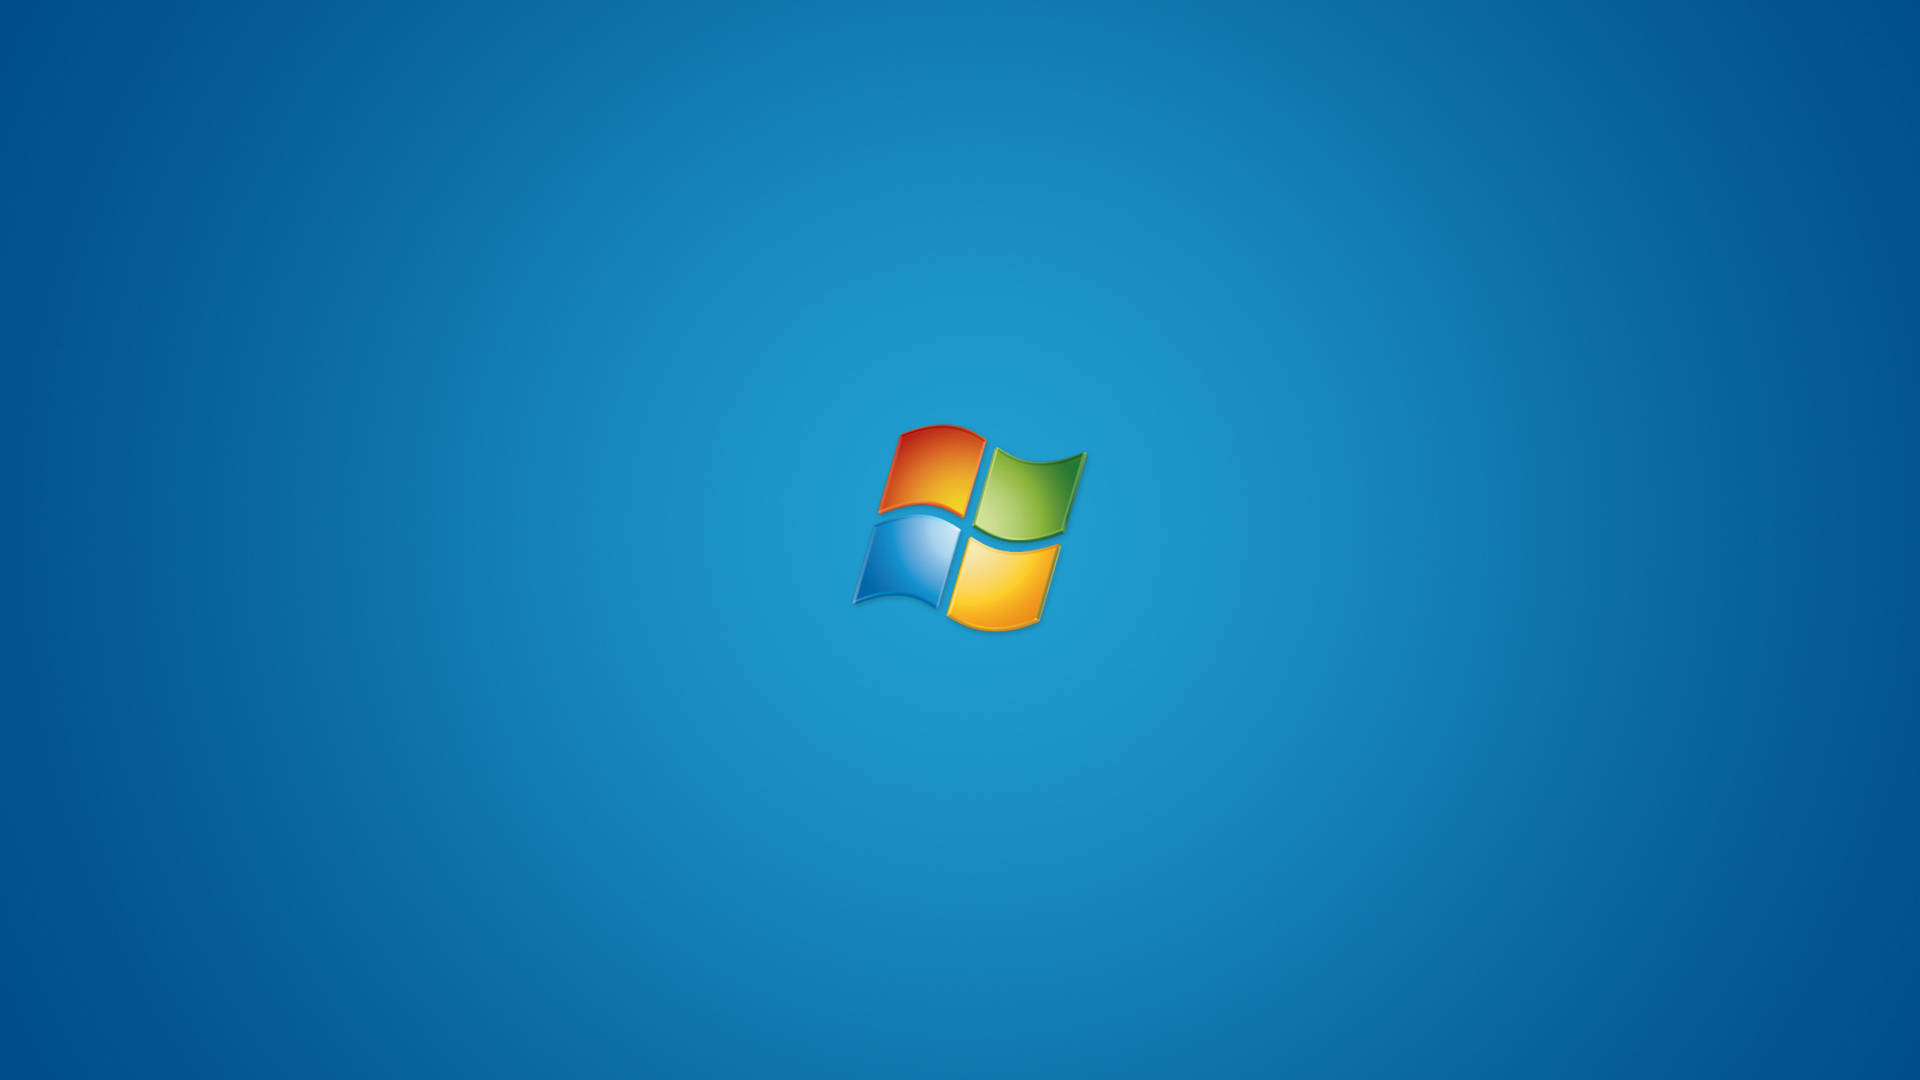 Microsoft Desktop Wallpaper HD 1920x1080